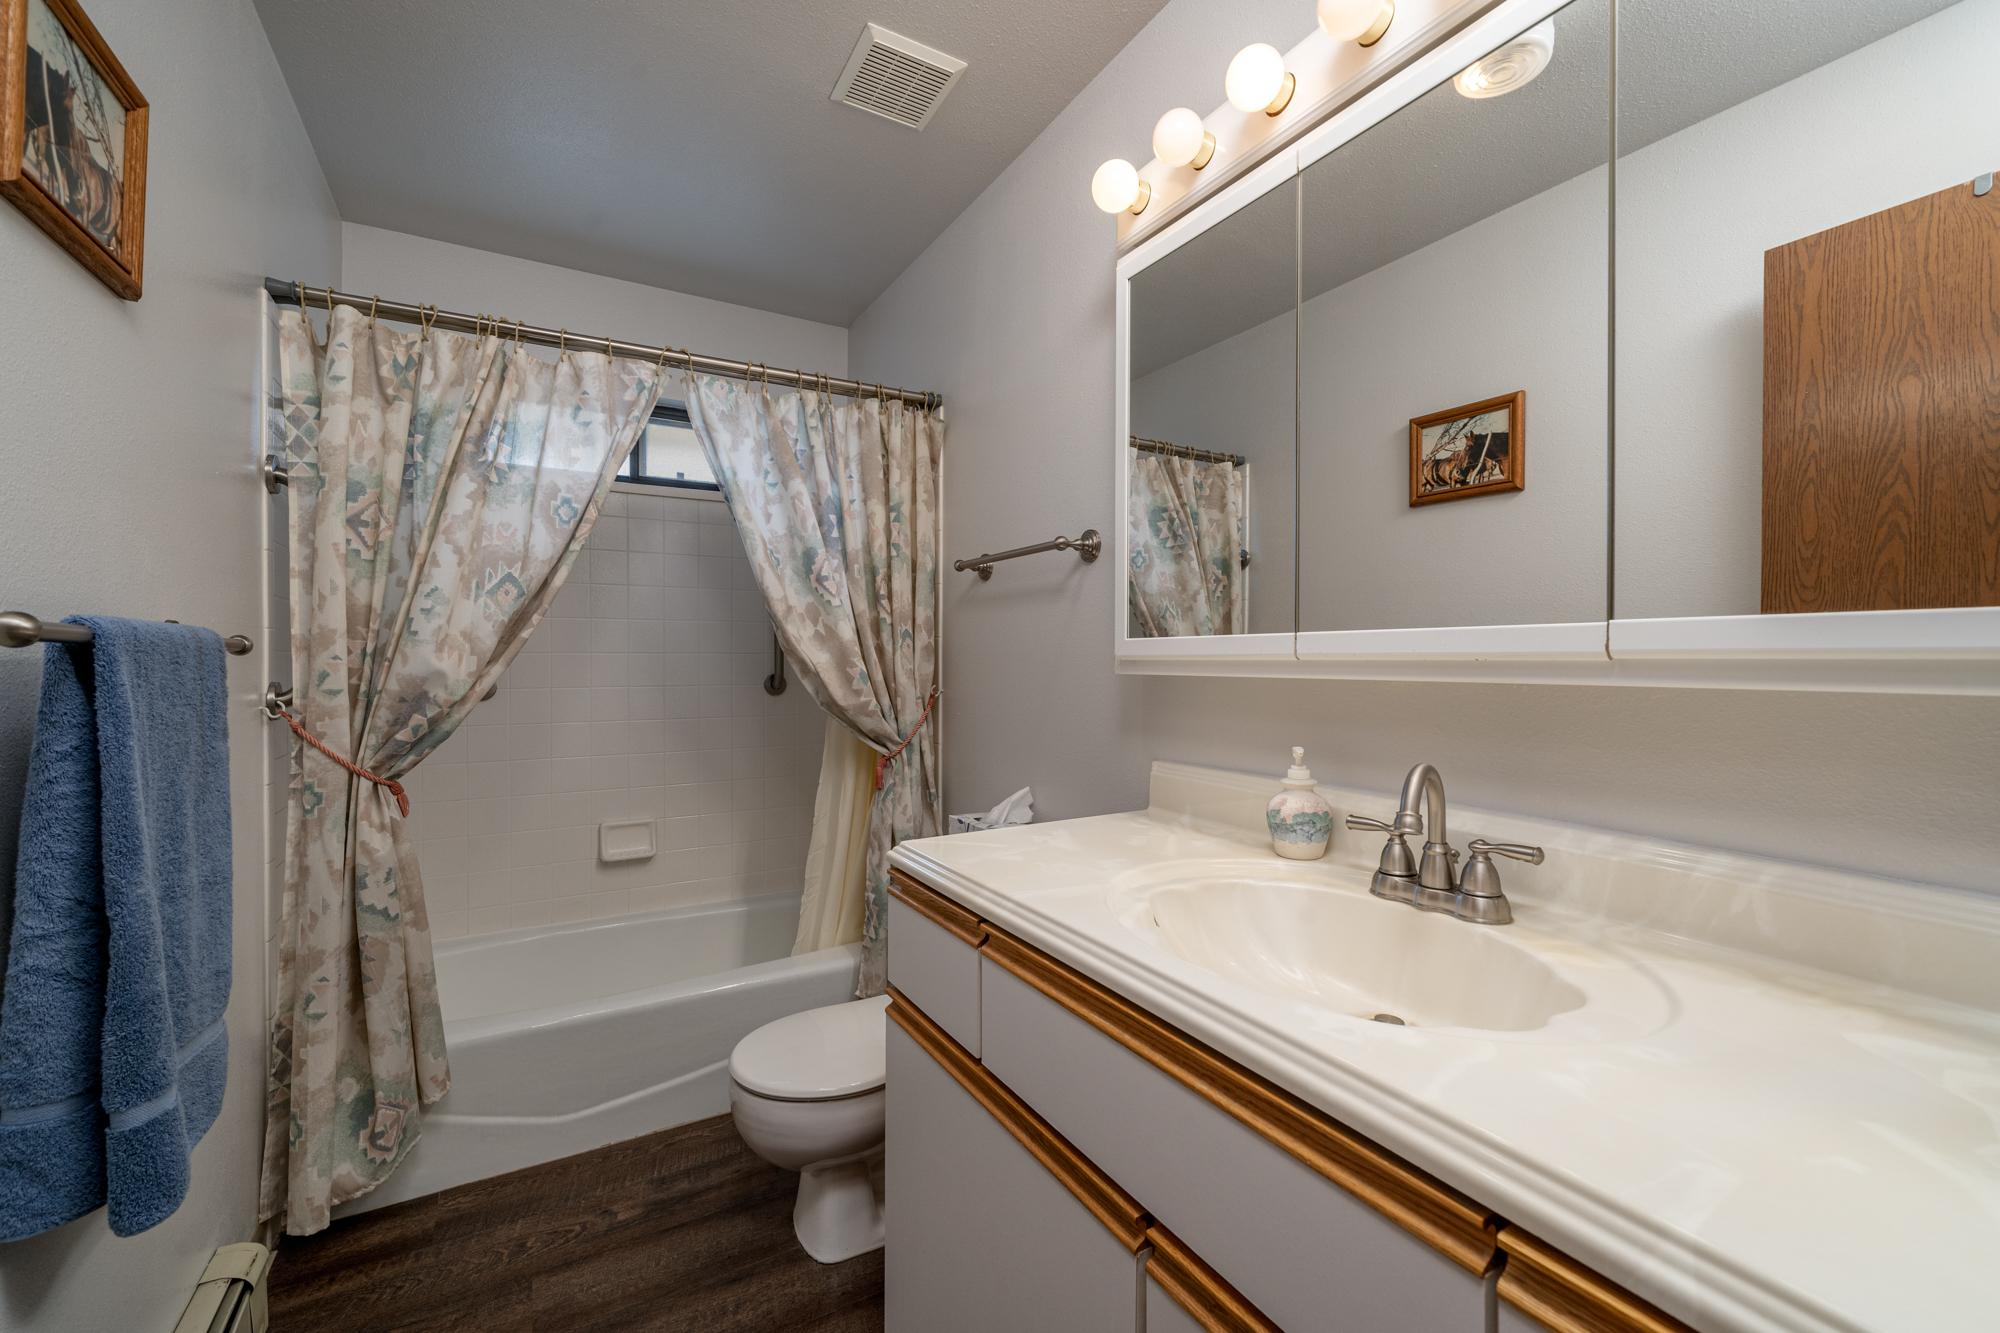 Bathroom with Vinyl Wood Floor - 1311 Manchester Dr Montrose, CO 81401 - Atha Team Realty Agents